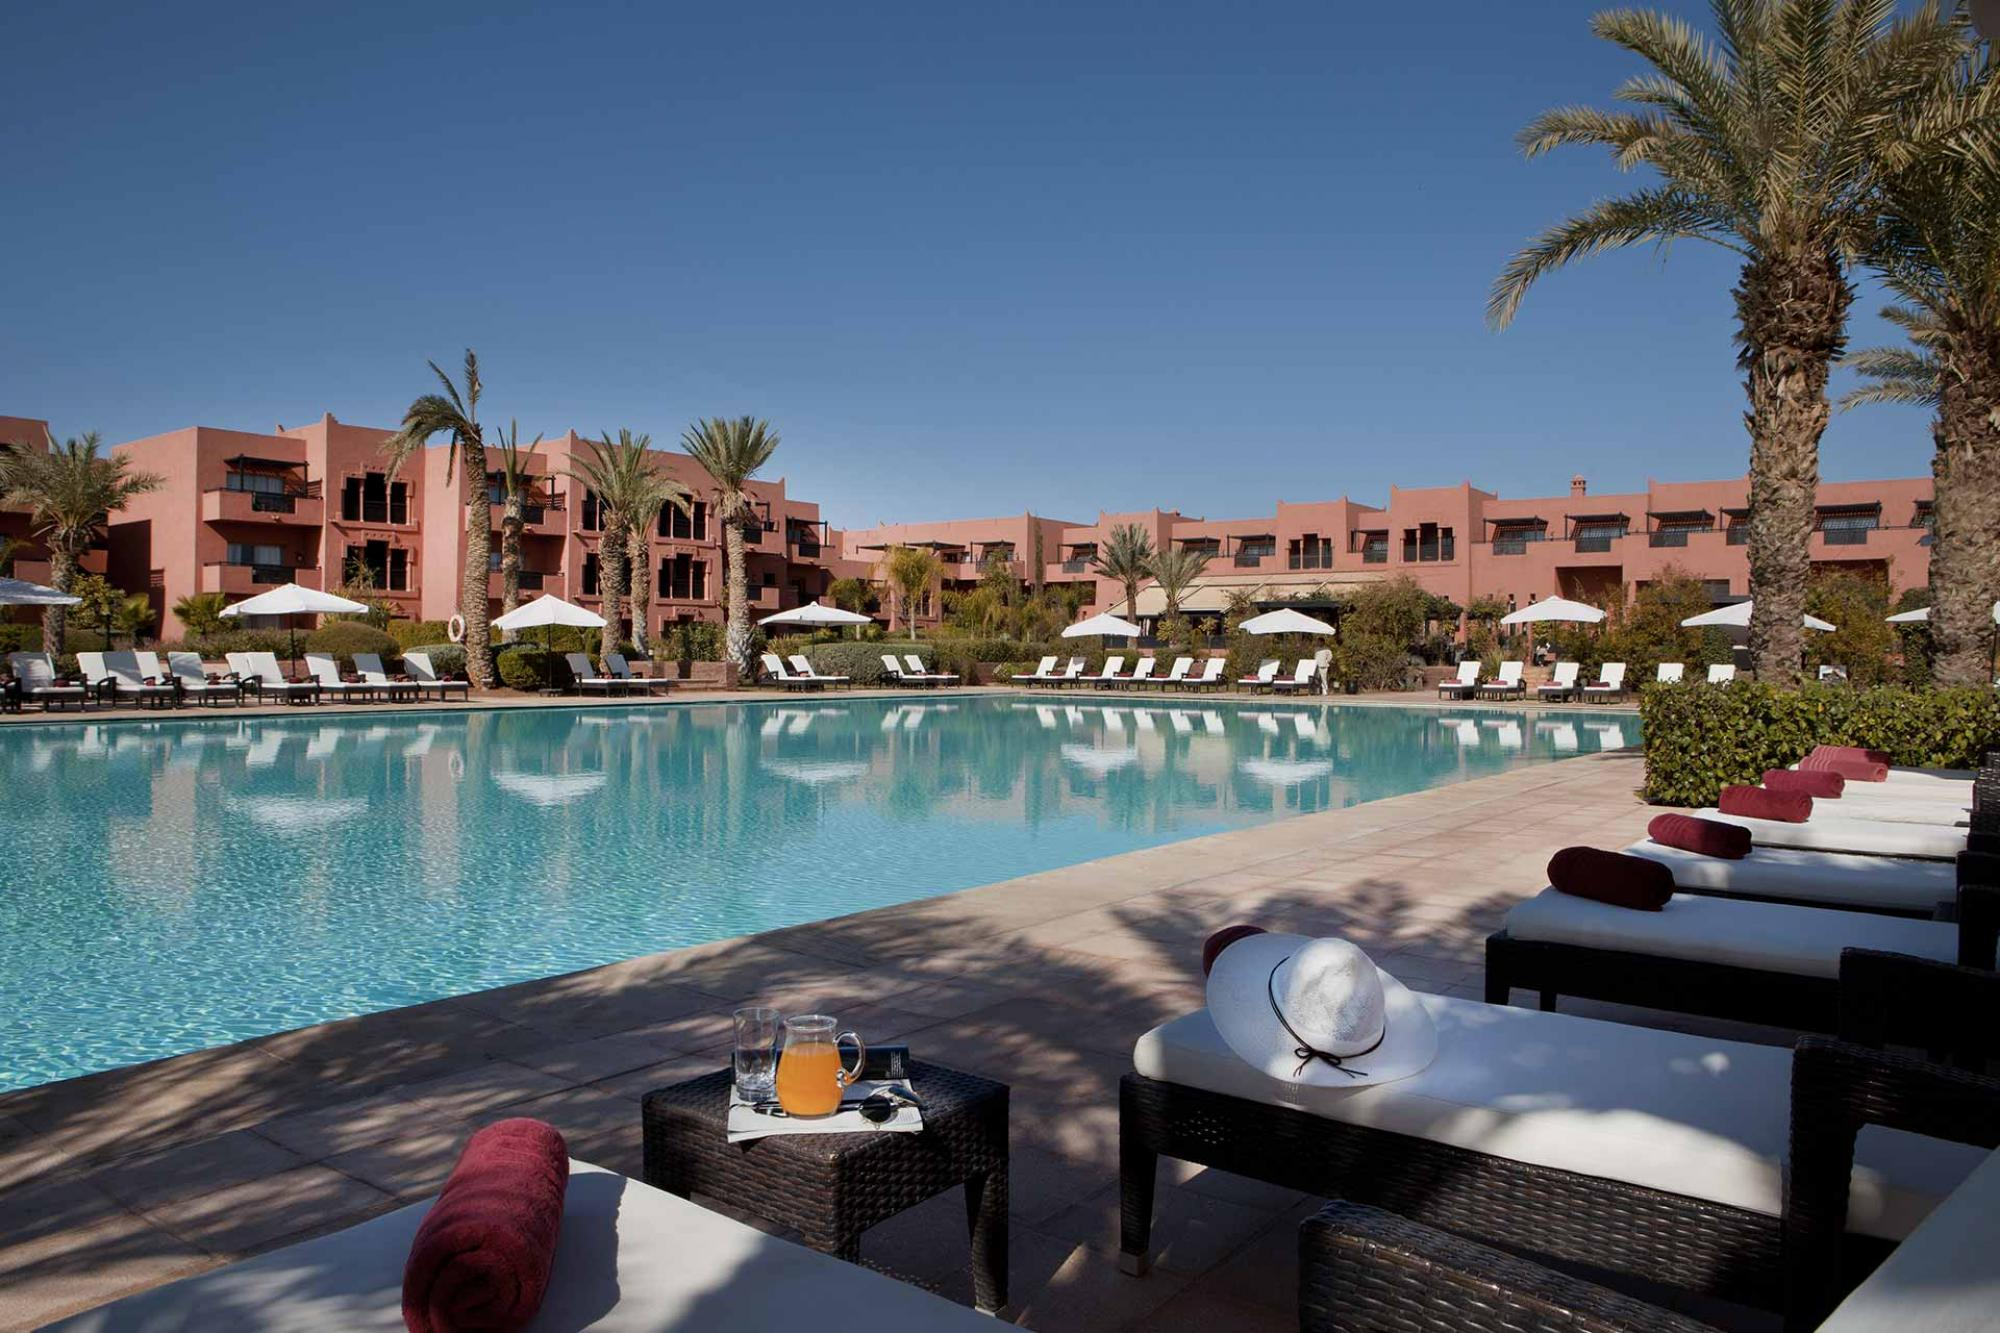 The Kenzi Menara Palace's impressive main pool situated in stunning Morocco.